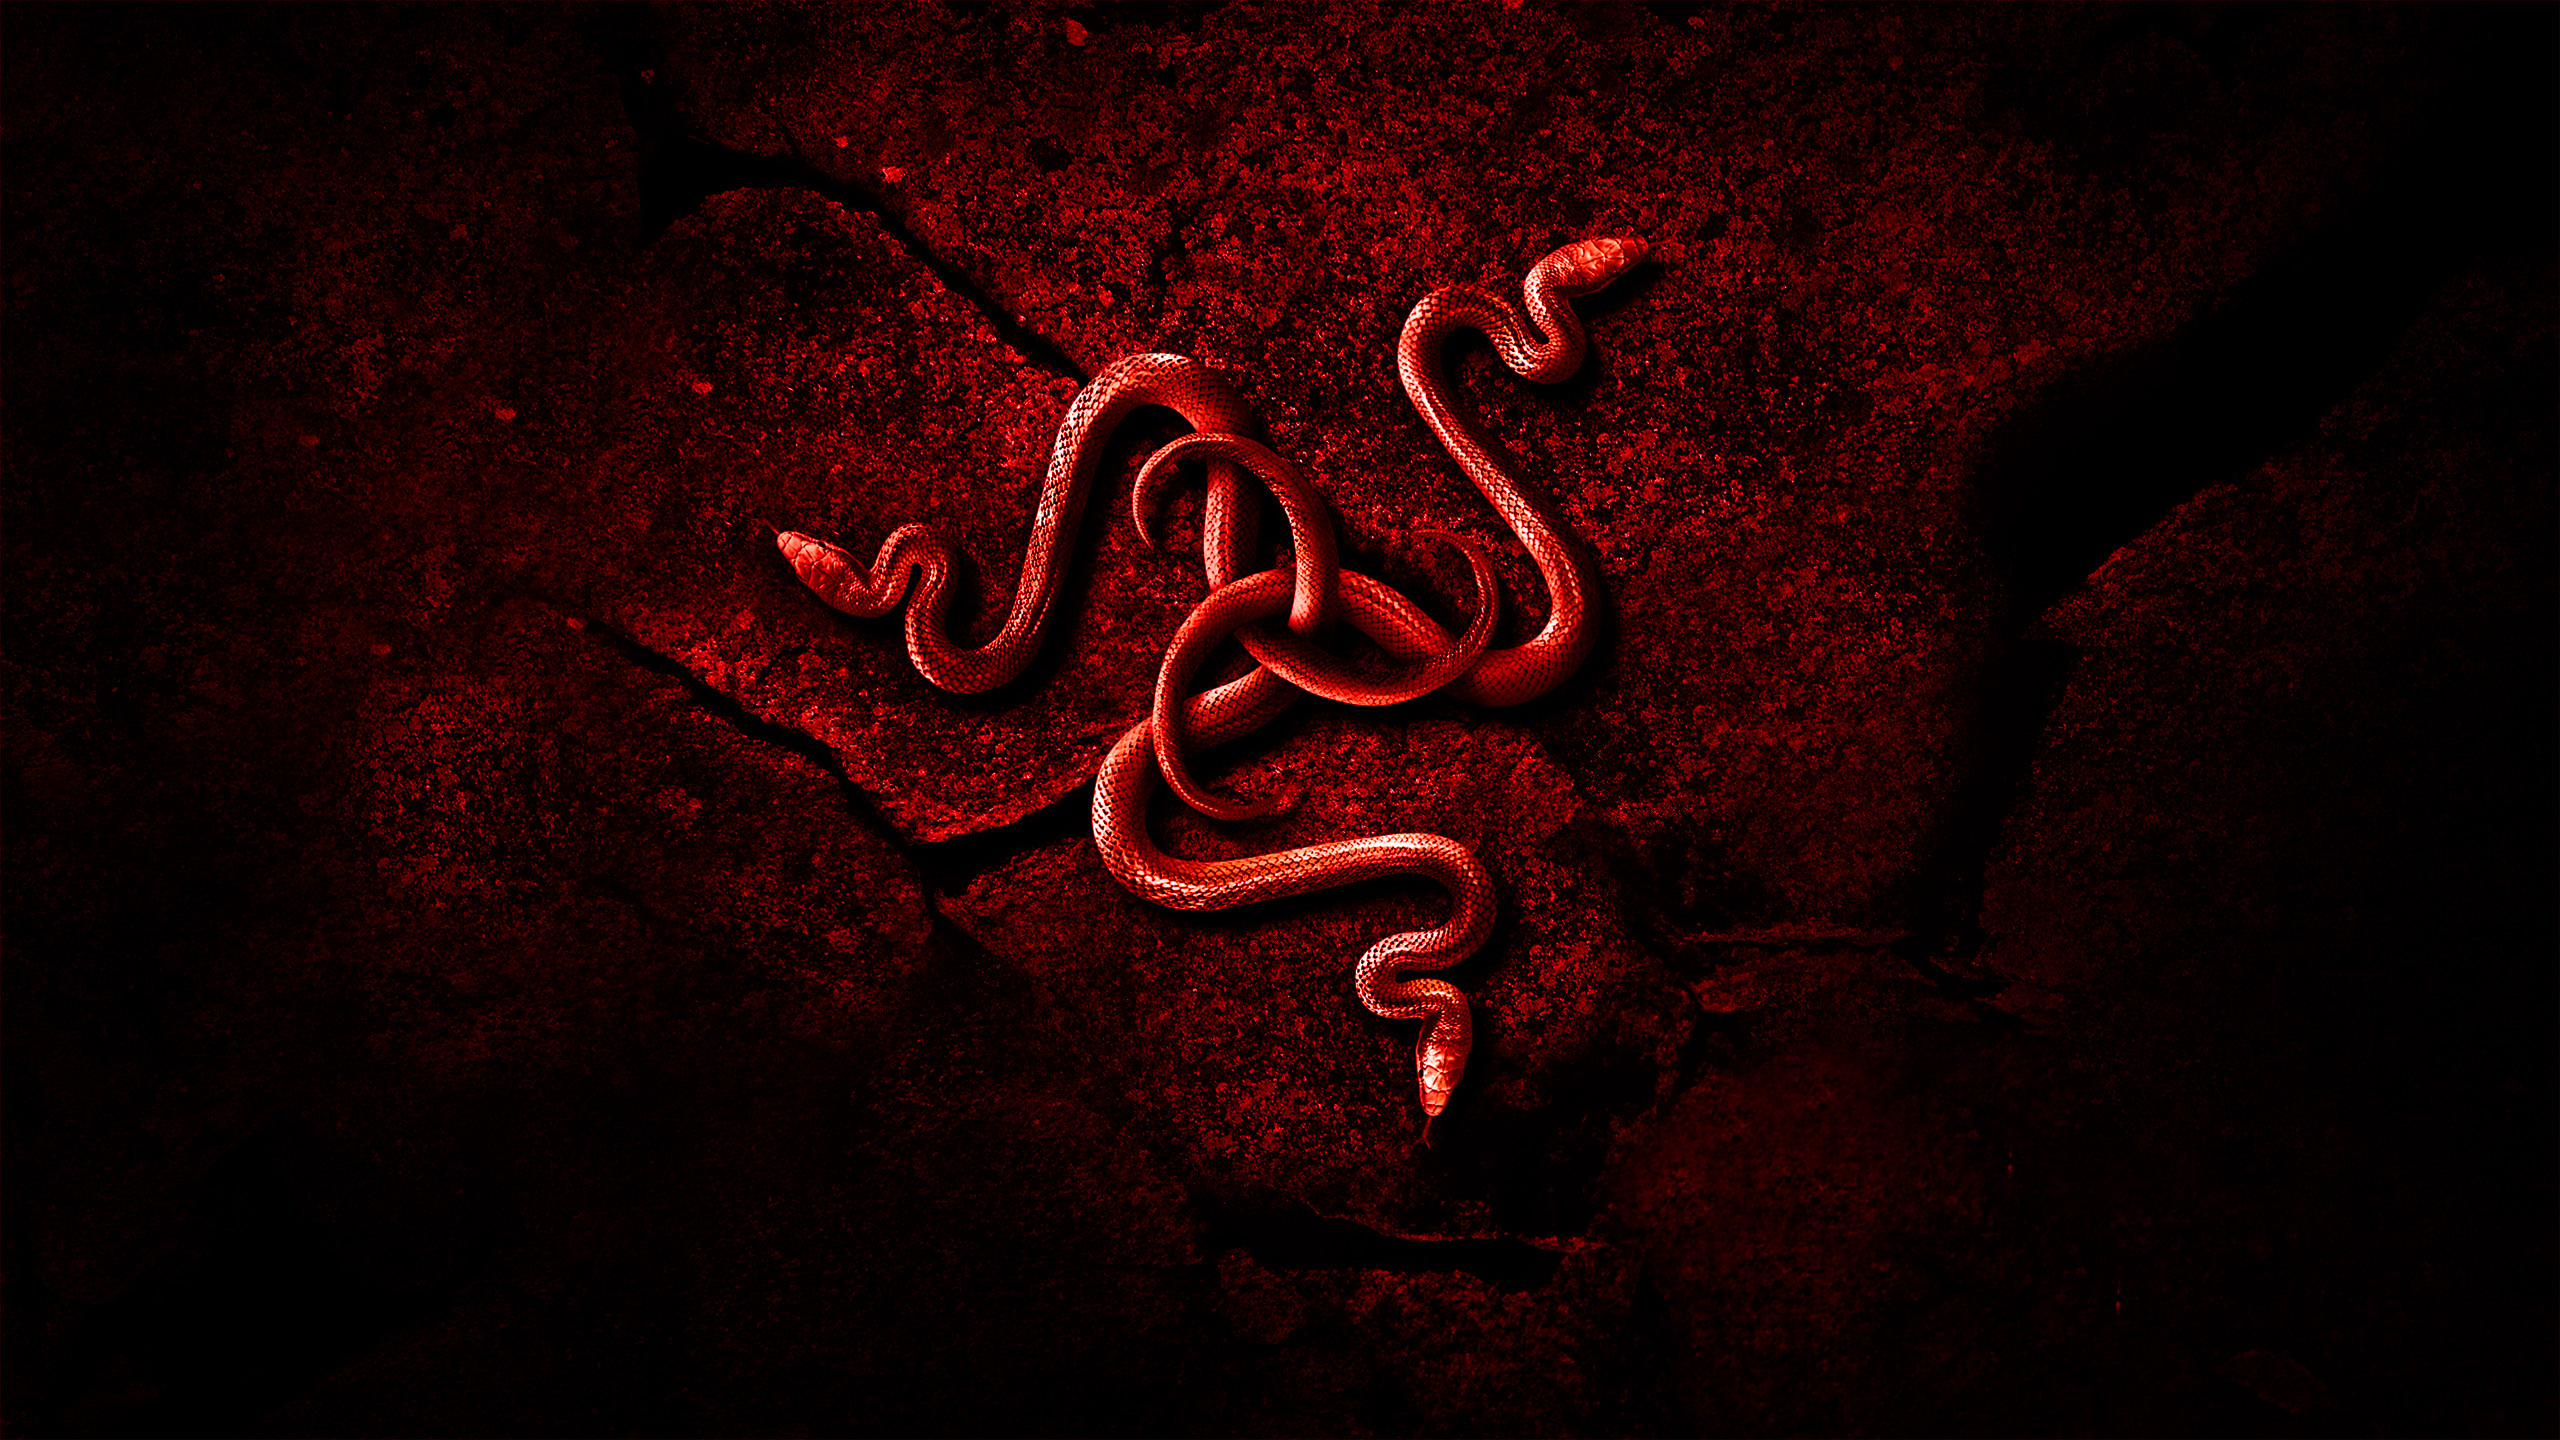 Red Razer Wallpaper HD (78+ images).